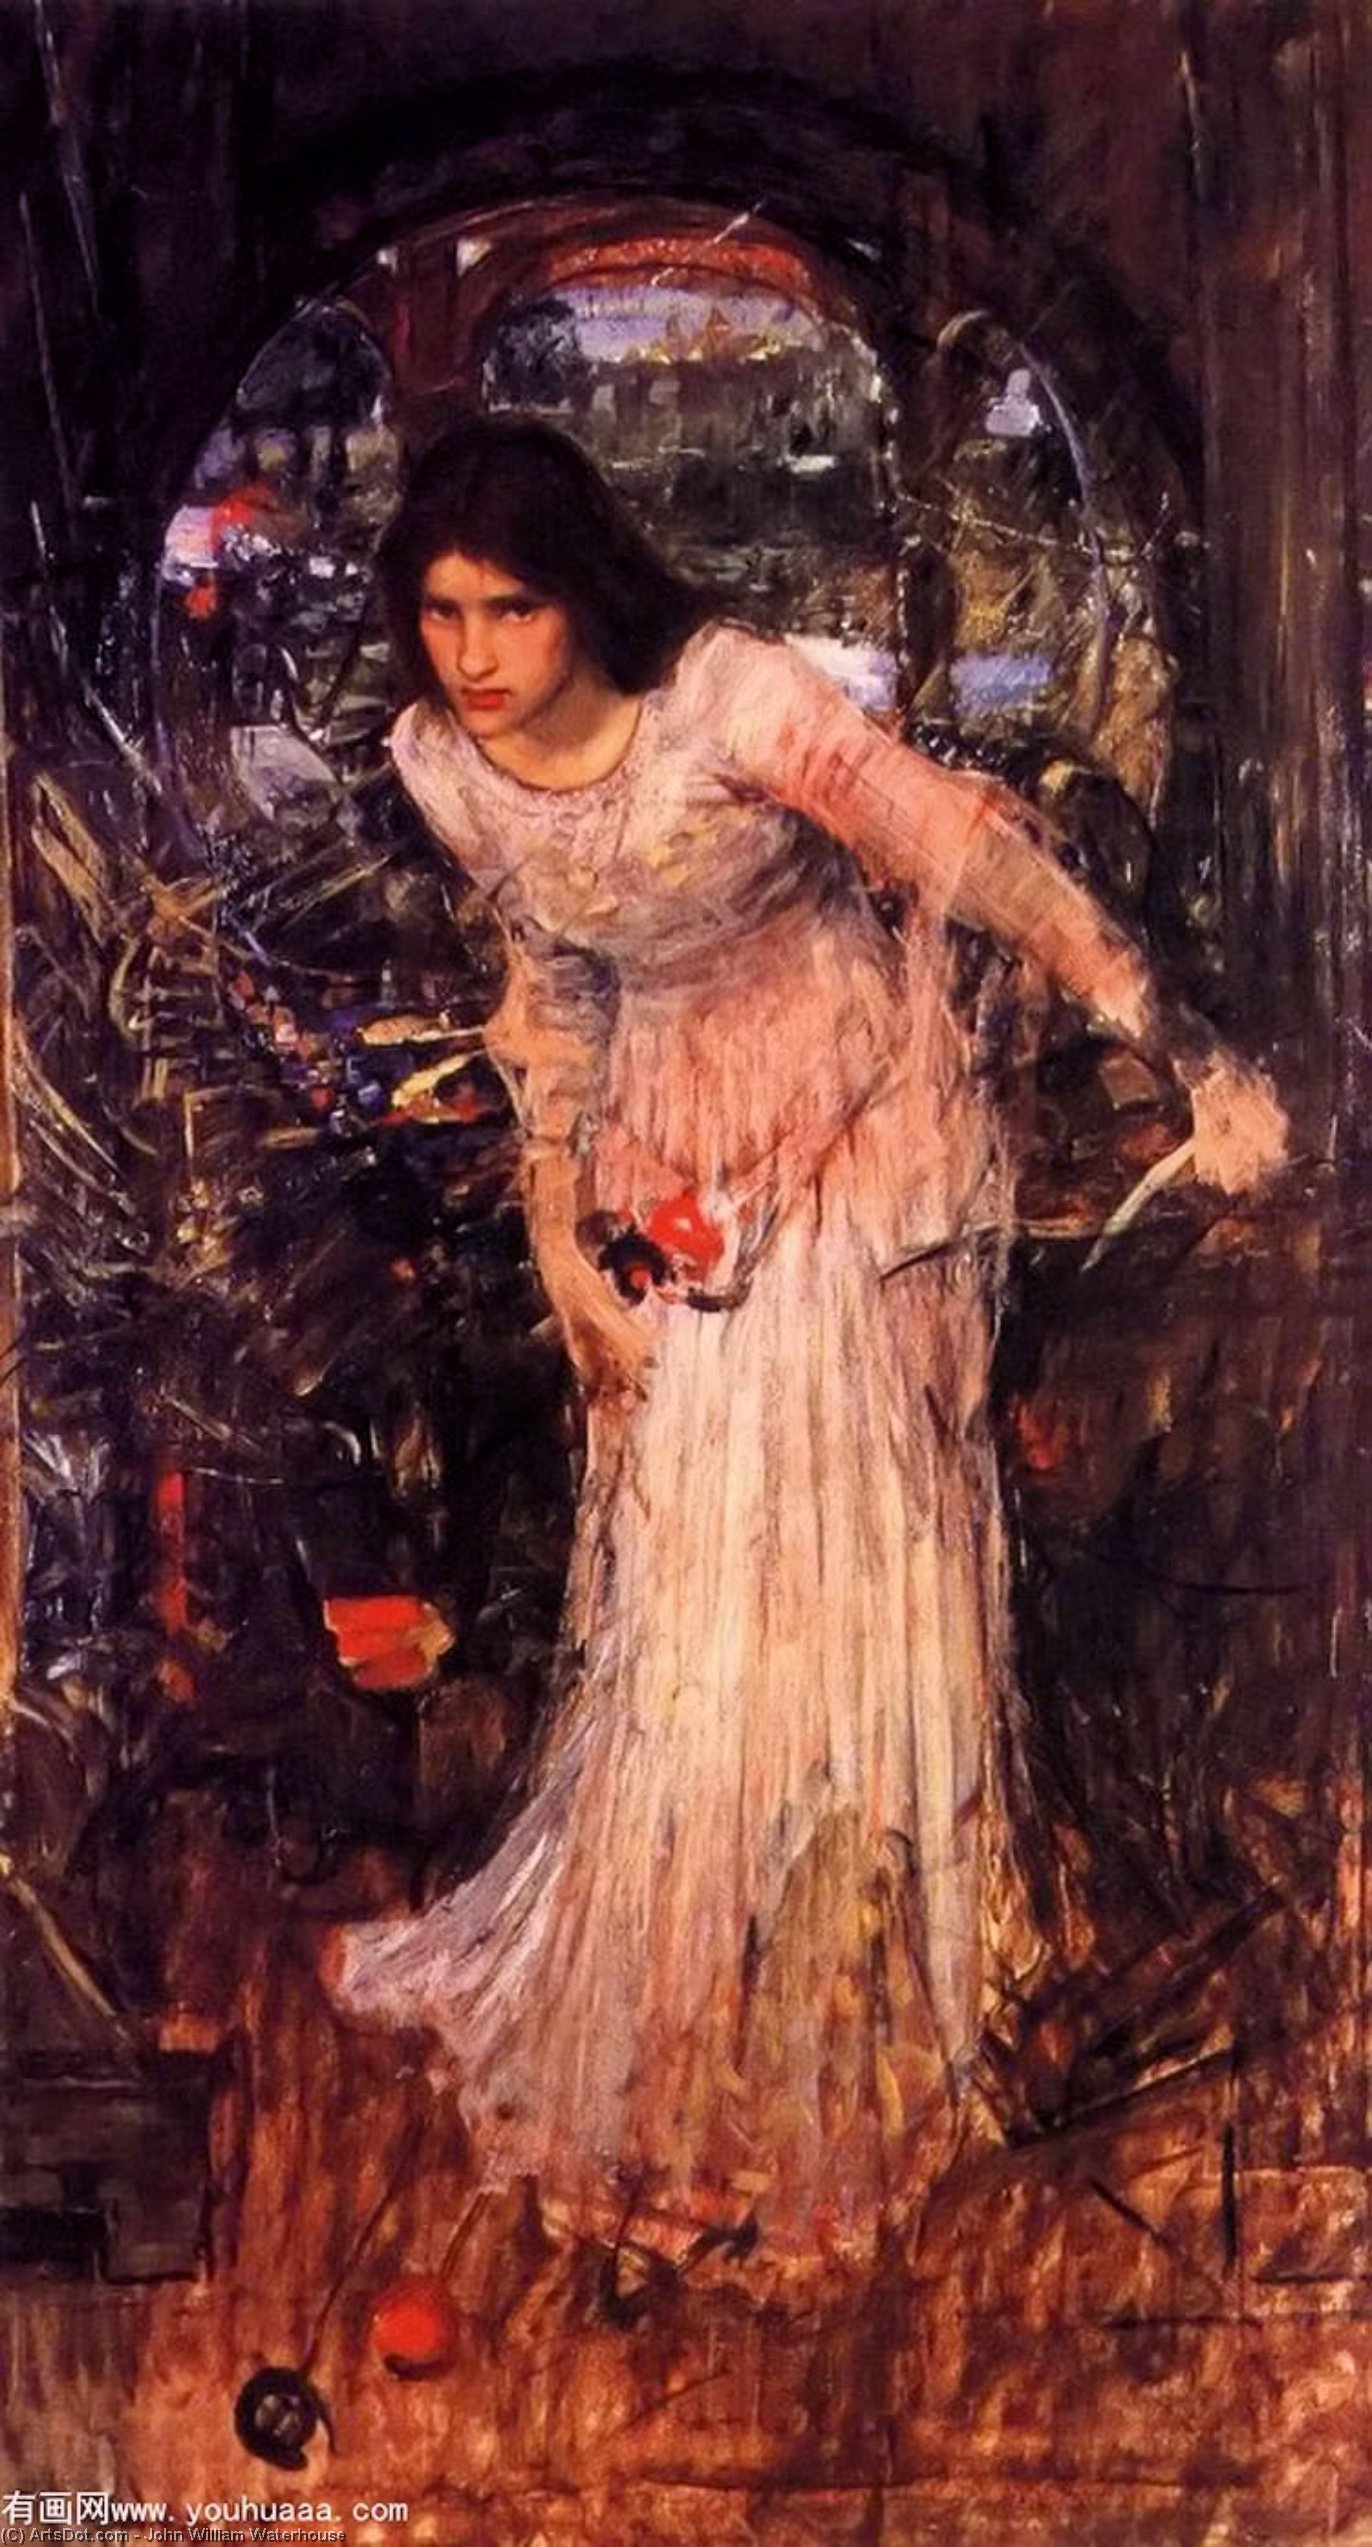 Wikioo.org - The Encyclopedia of Fine Arts - Painting, Artwork by John William Waterhouse - The lady of shalott study